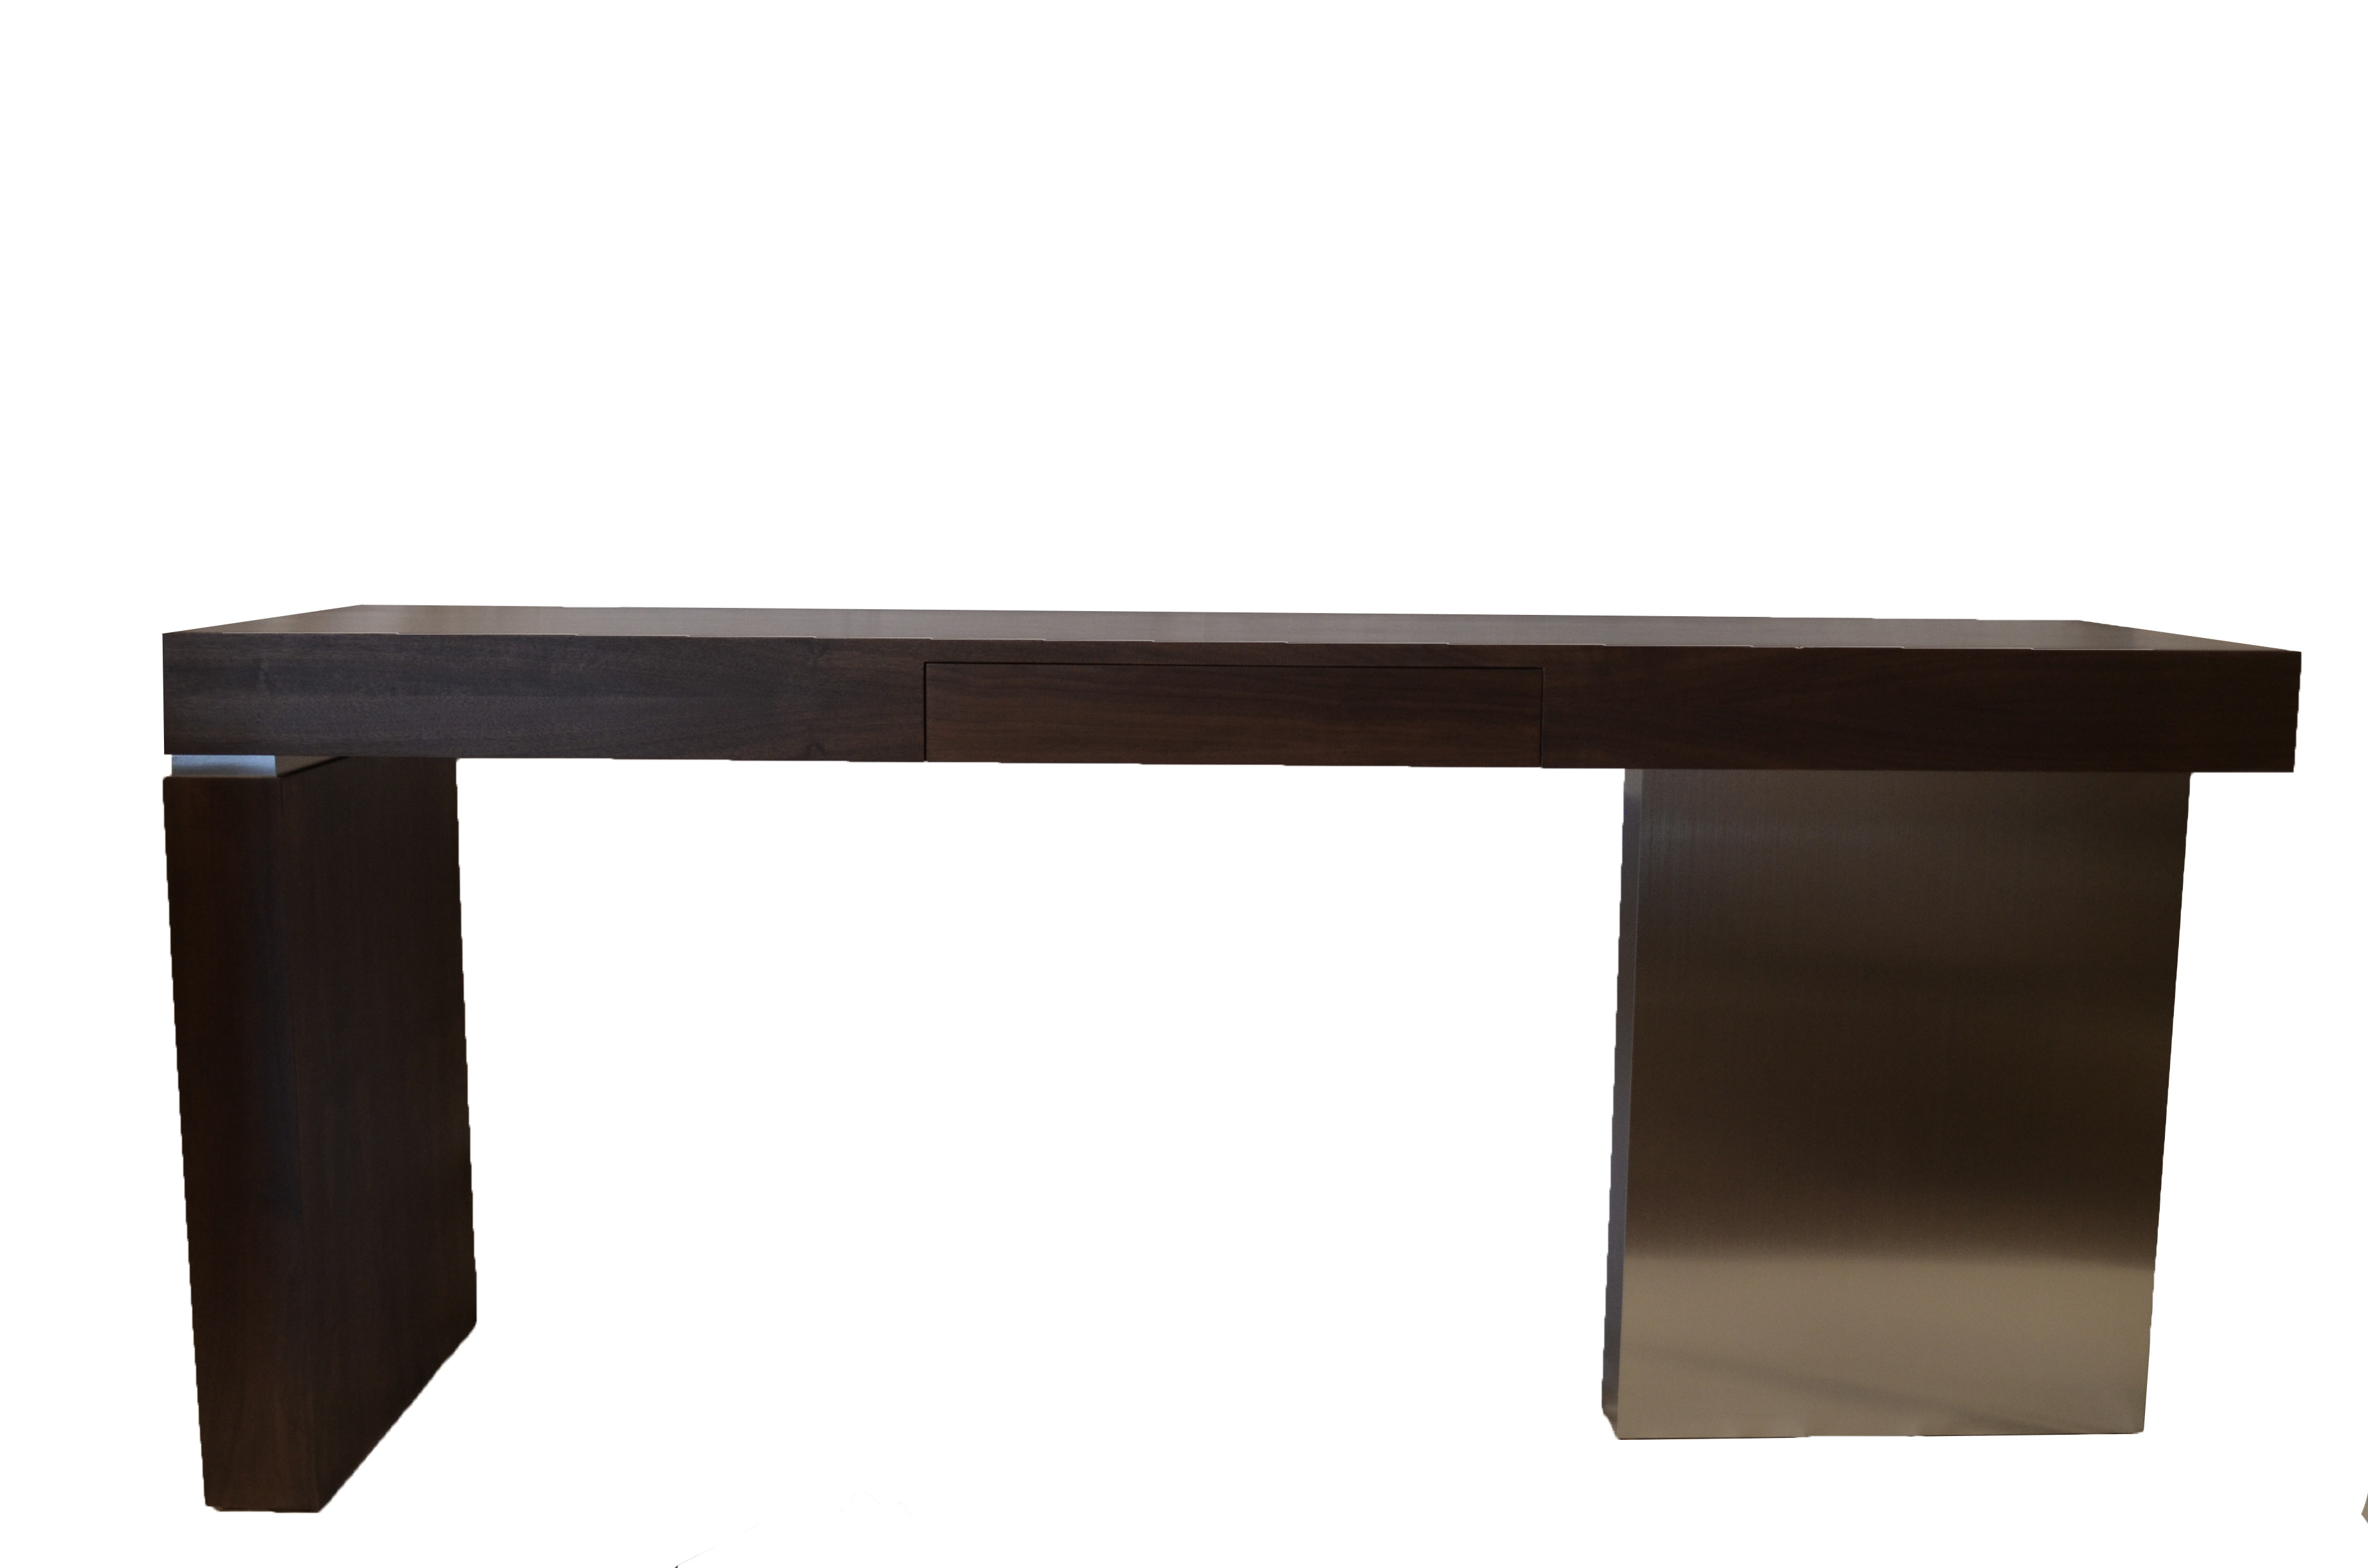 Console Tables Archives – Thingz Contemporary Living Inside Archive Grey Console Tables (View 4 of 30)